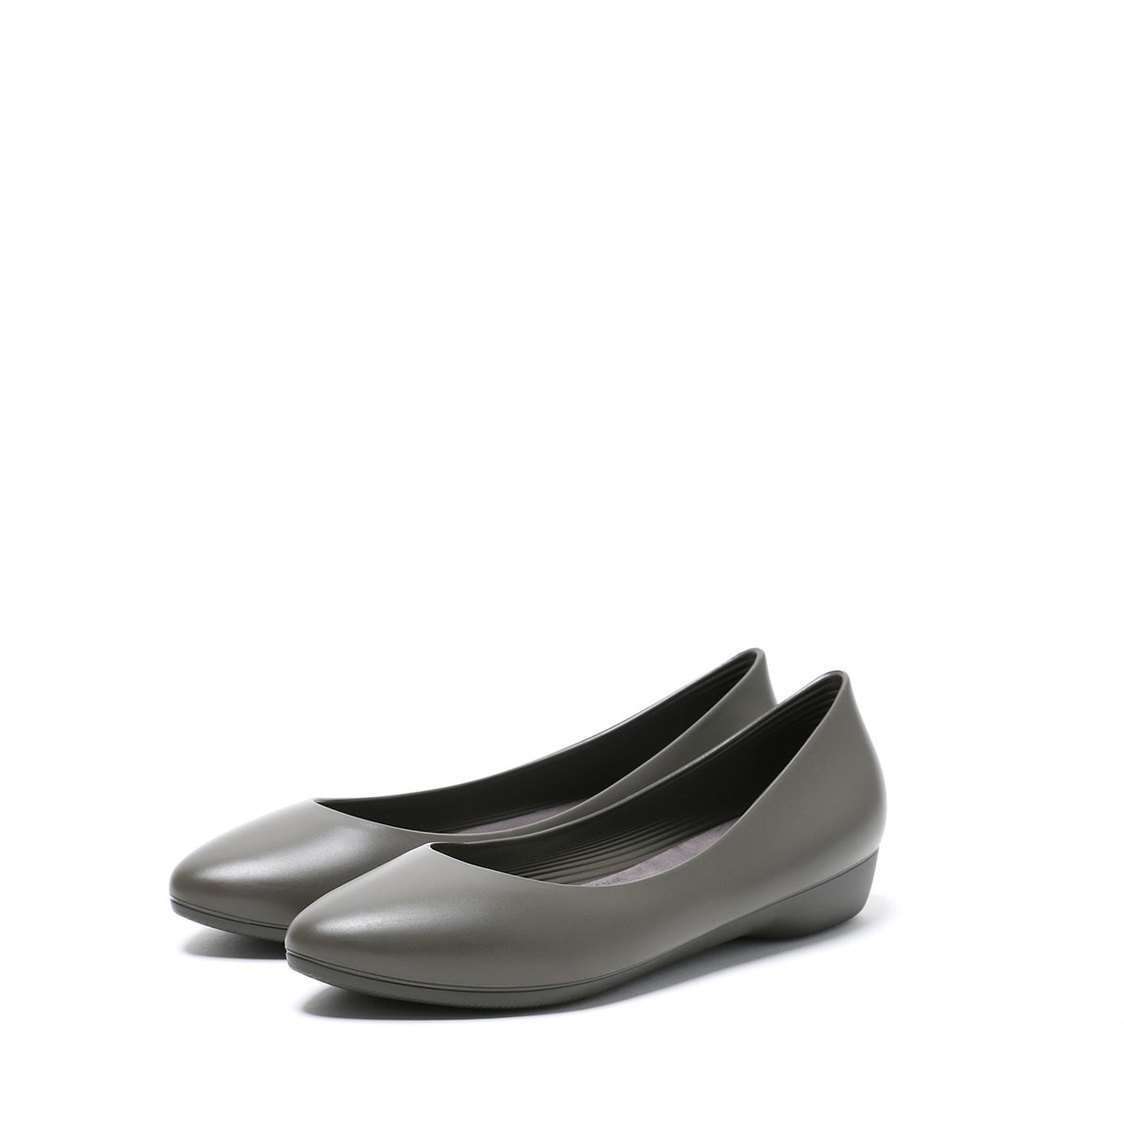 F3 Flat-Pointed Heel height 3cm Ash Grey